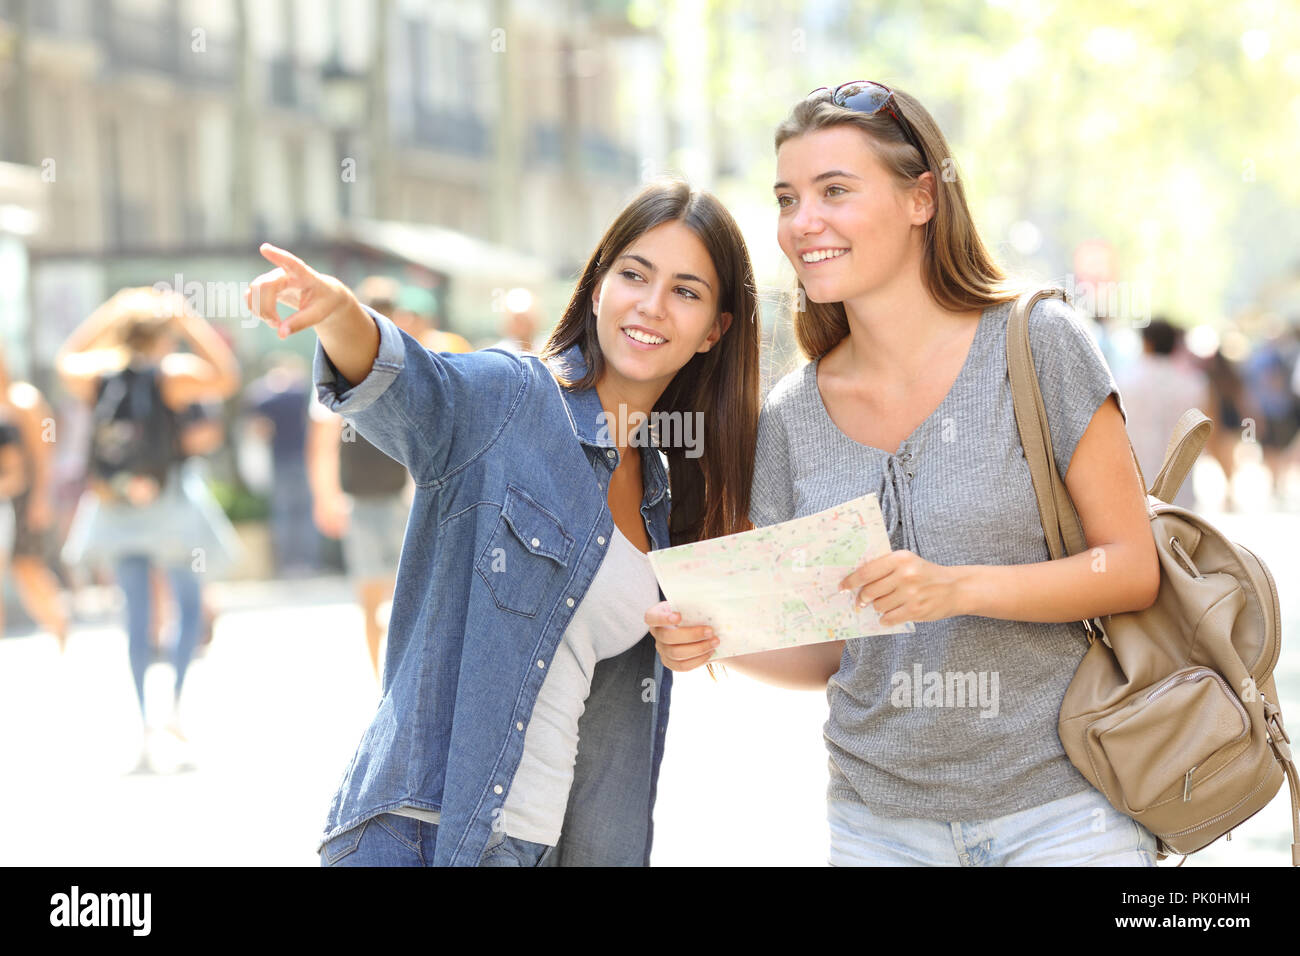 Happy girl helping to a tourist who asks direction in the street - Stock Image